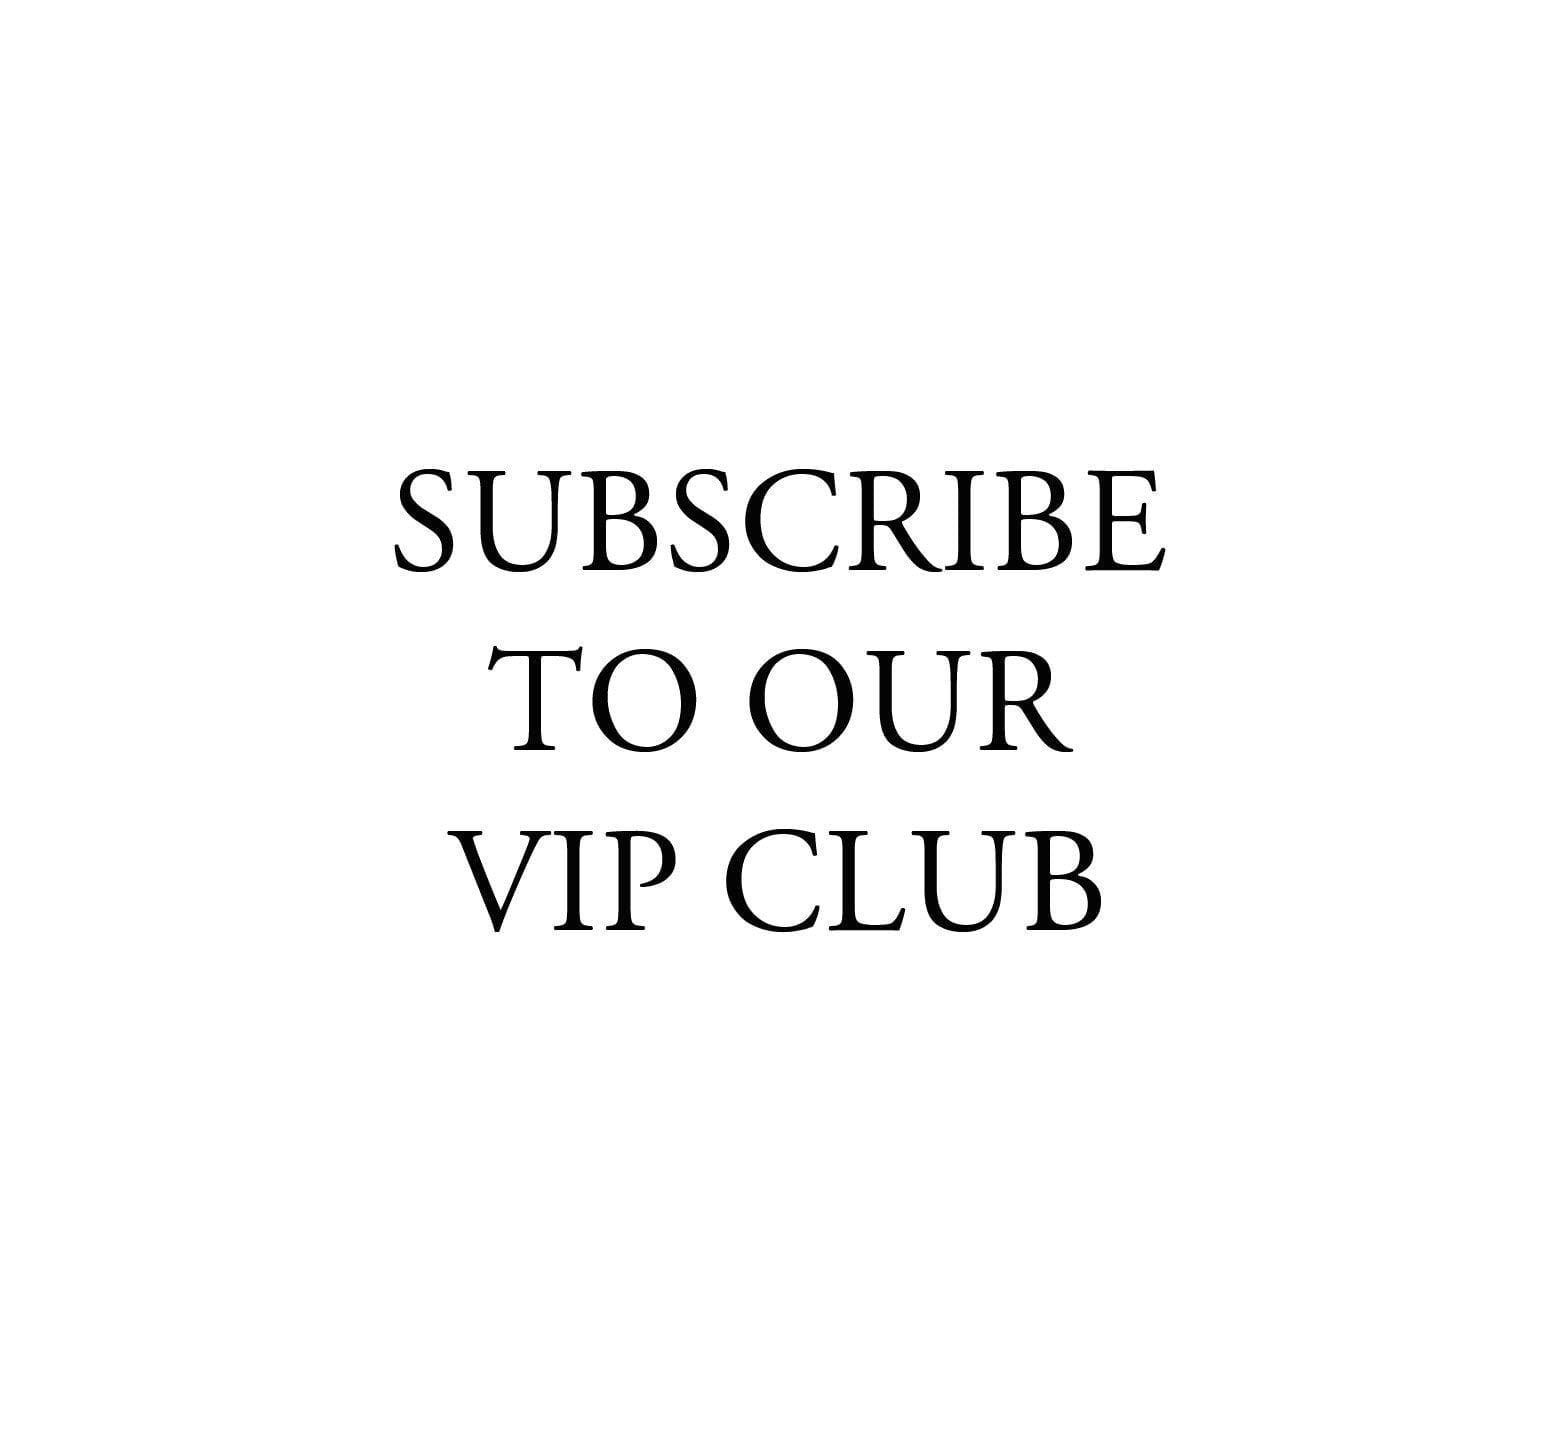 vipsubscribe